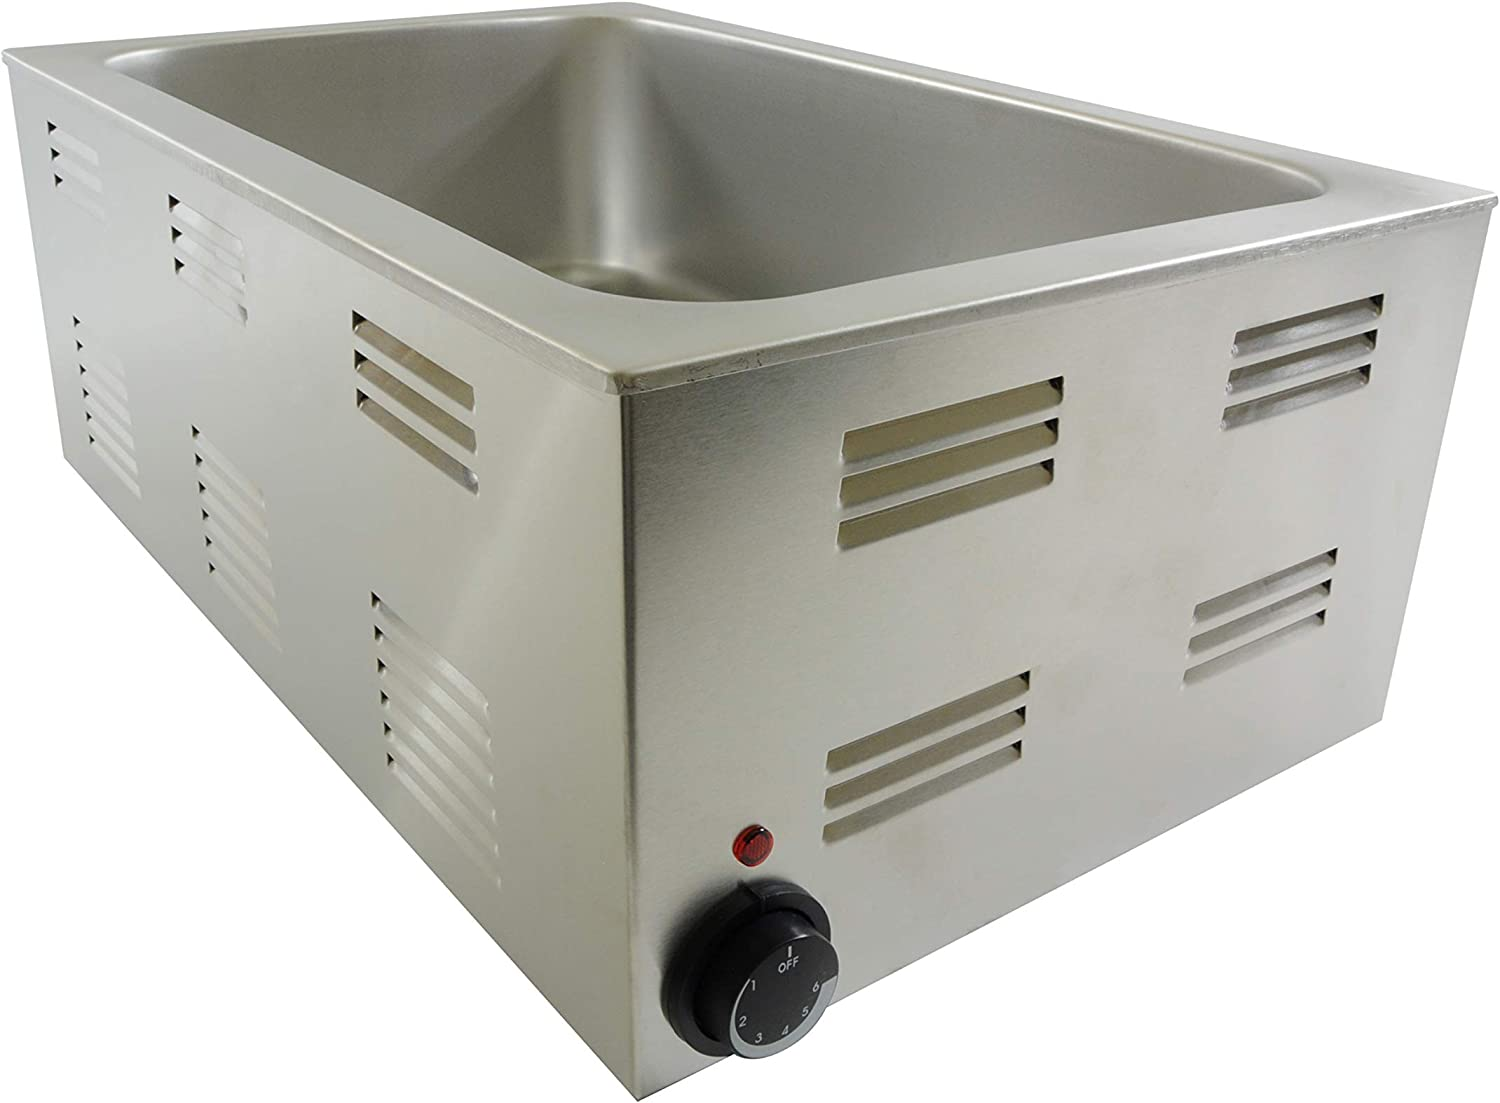 Thunder Group Stainless steel 8 quart food warmer with full size steam pan and lid set, SEJ80000C + STPA9002, comes in set